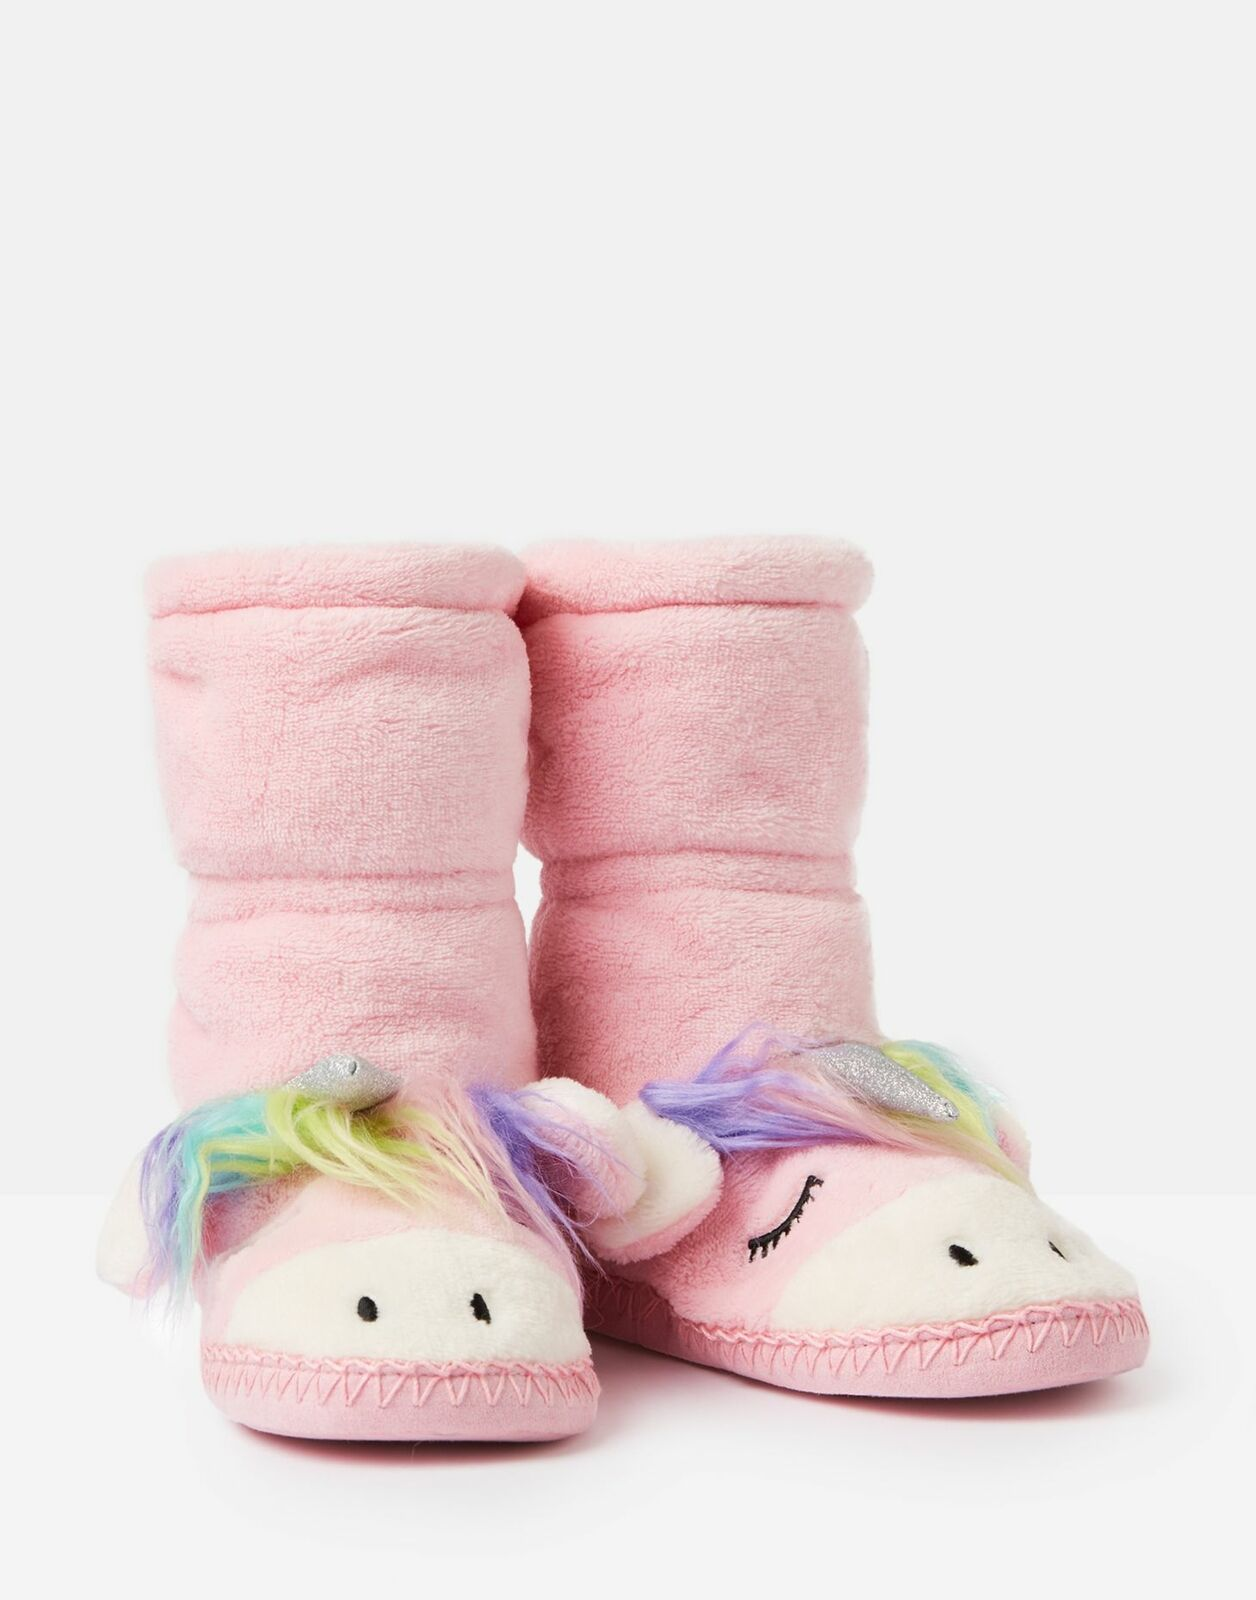 Joules Fluffy Slipper Sock in UNICORN for £9.84 on ebay